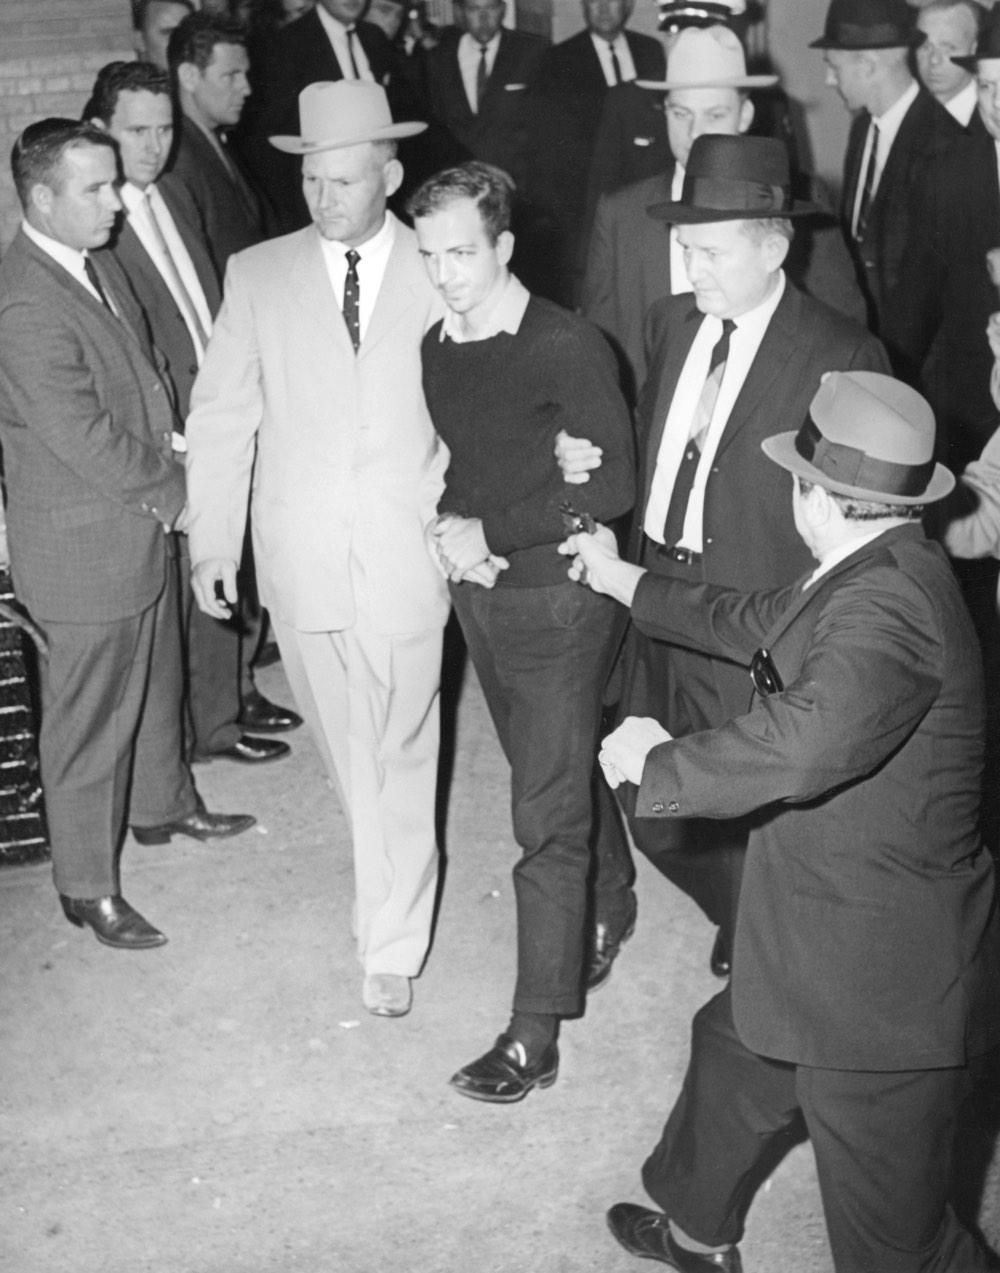 the other less famous photo of jack ruby shooting lee harvey